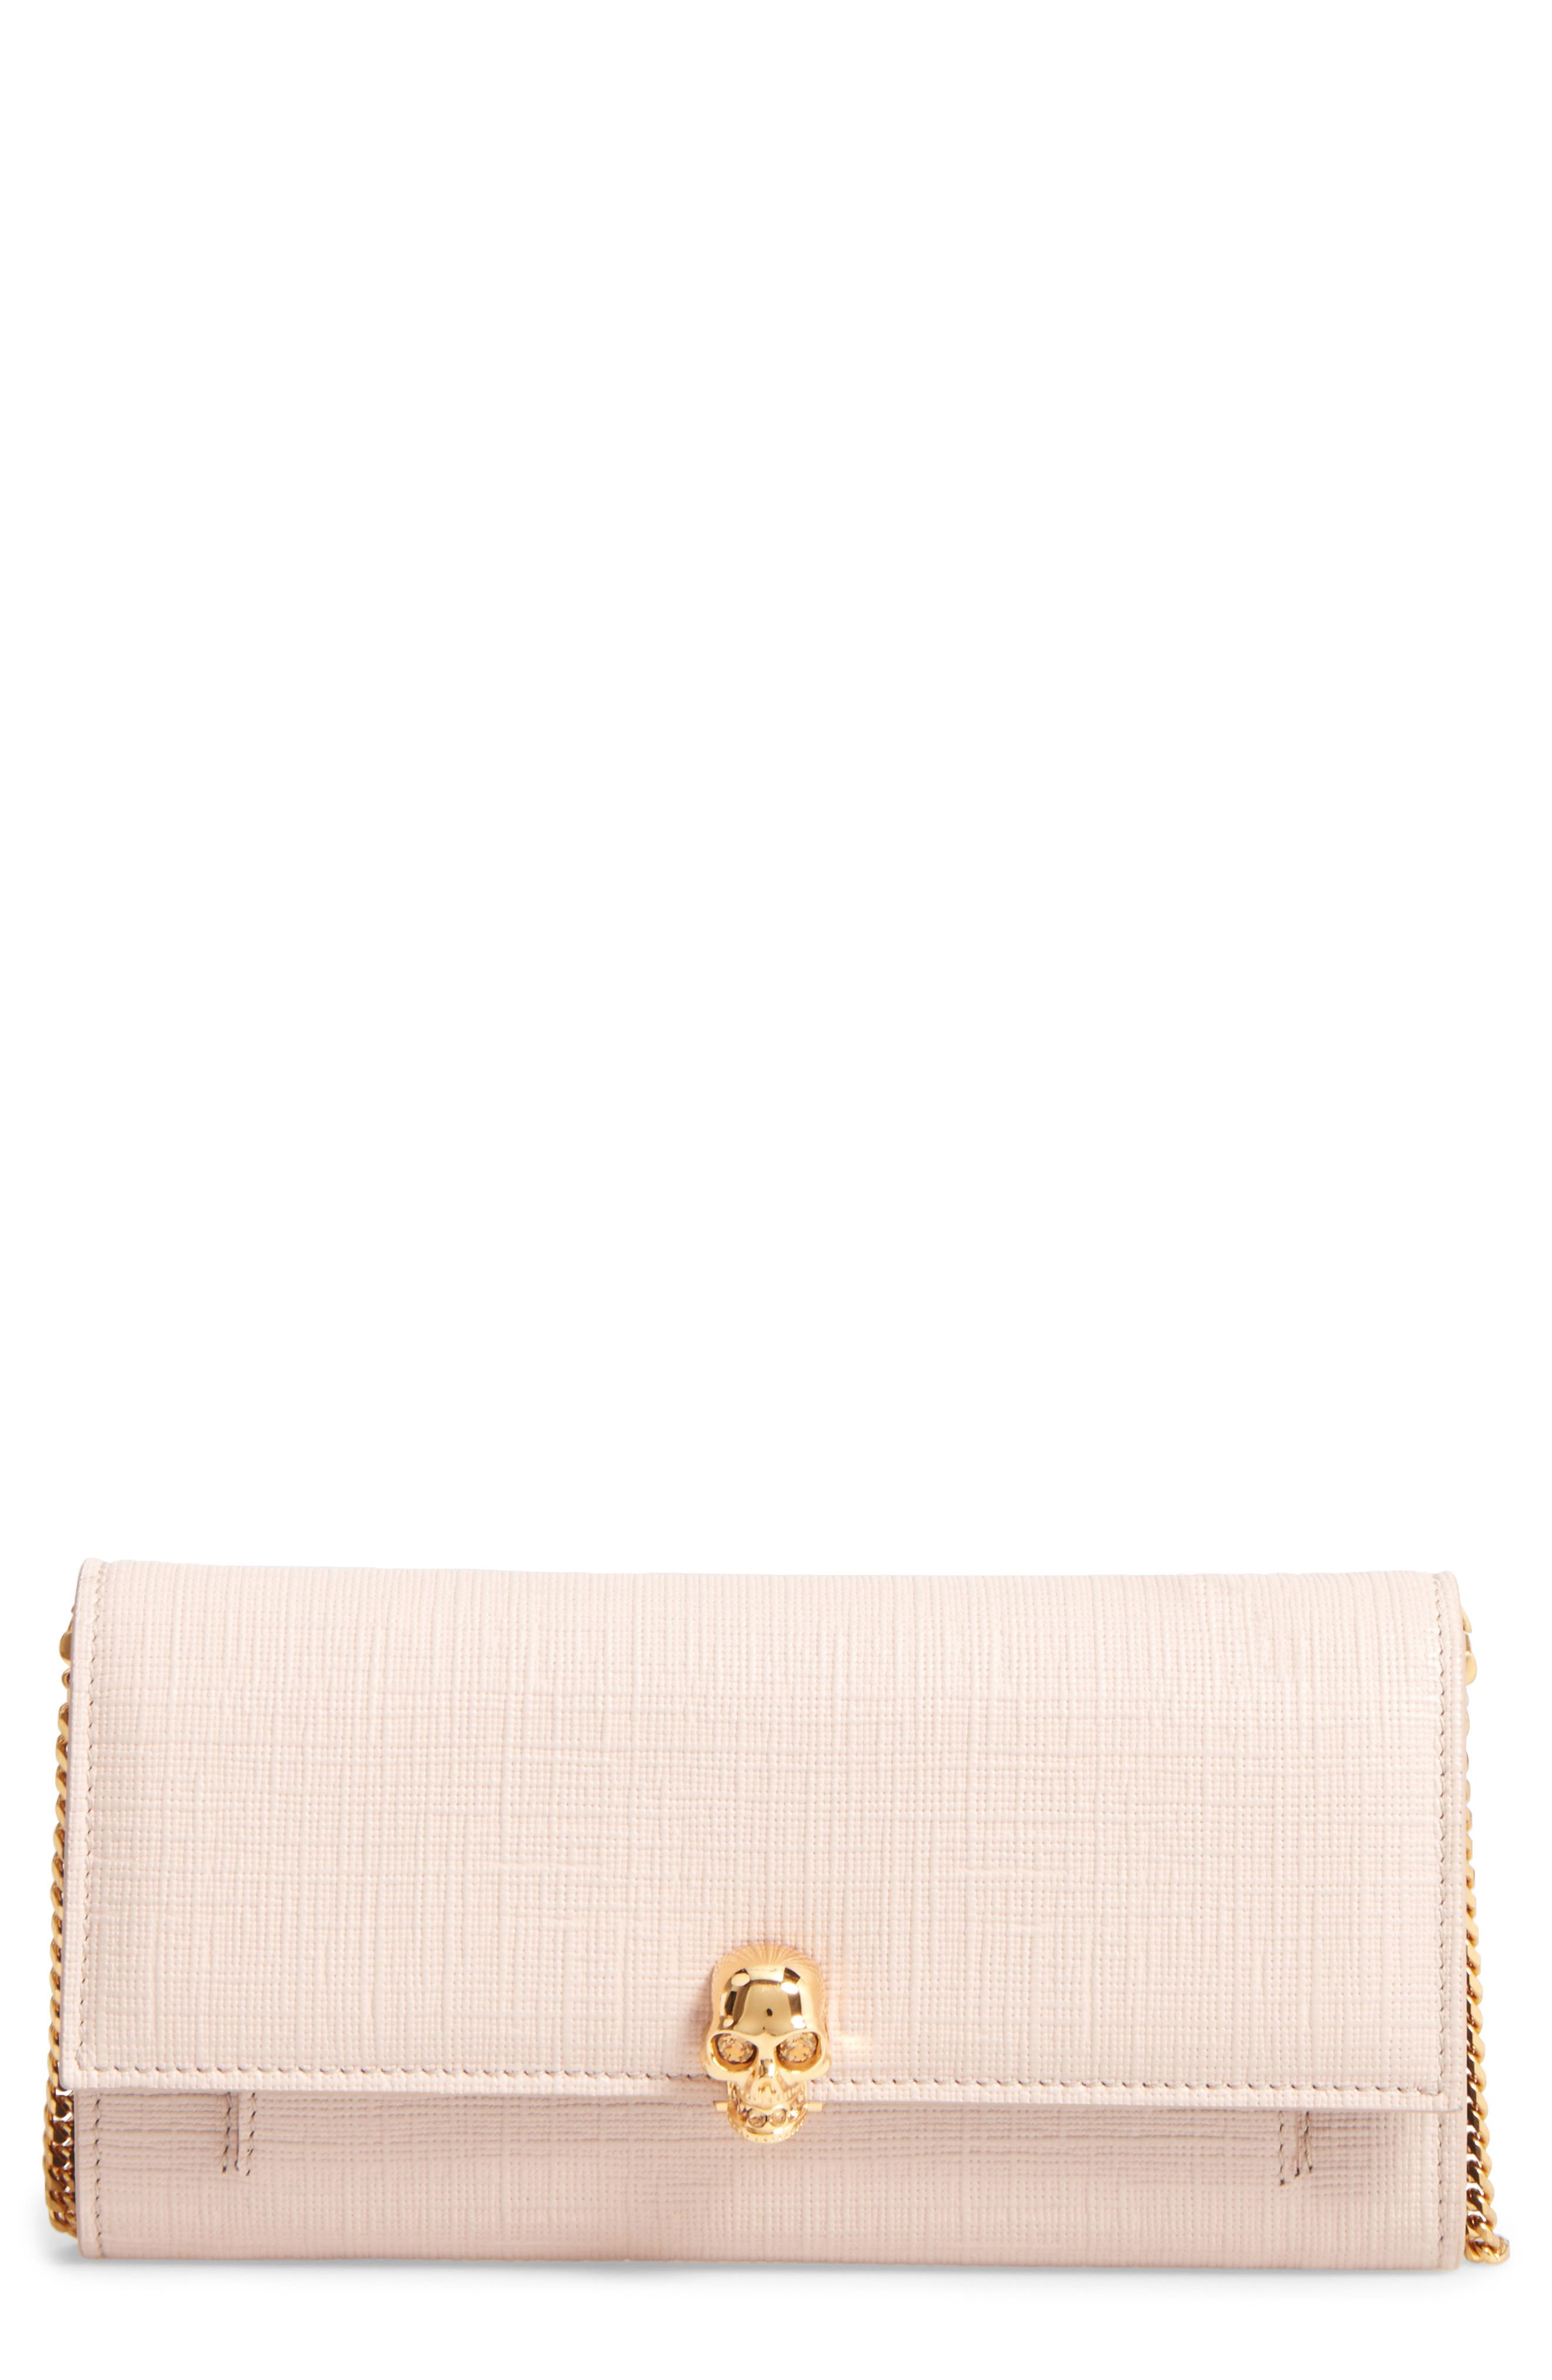 Alternate Image 1 Selected - Alexander McQueen Embossed Leather Wallet on a Chain